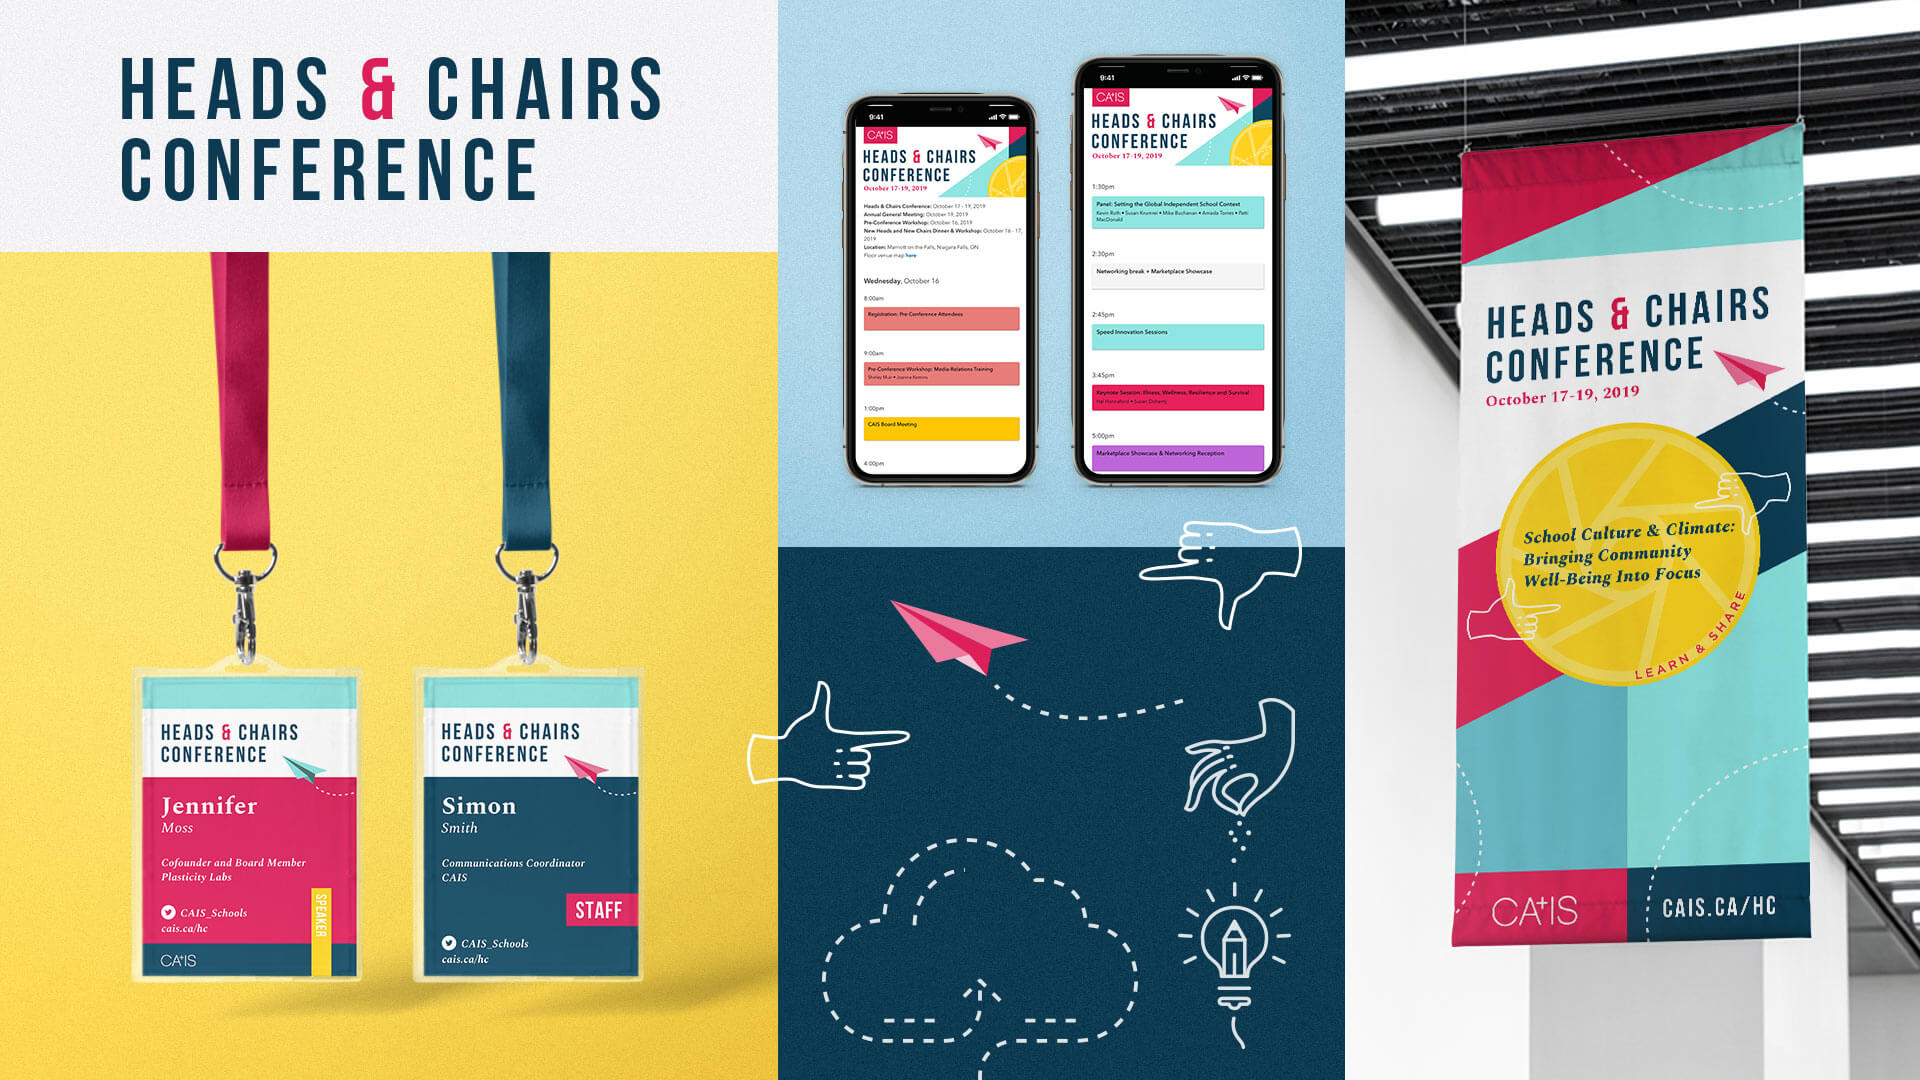 CAIS Heads & Chairs Conference Marketing Collateral